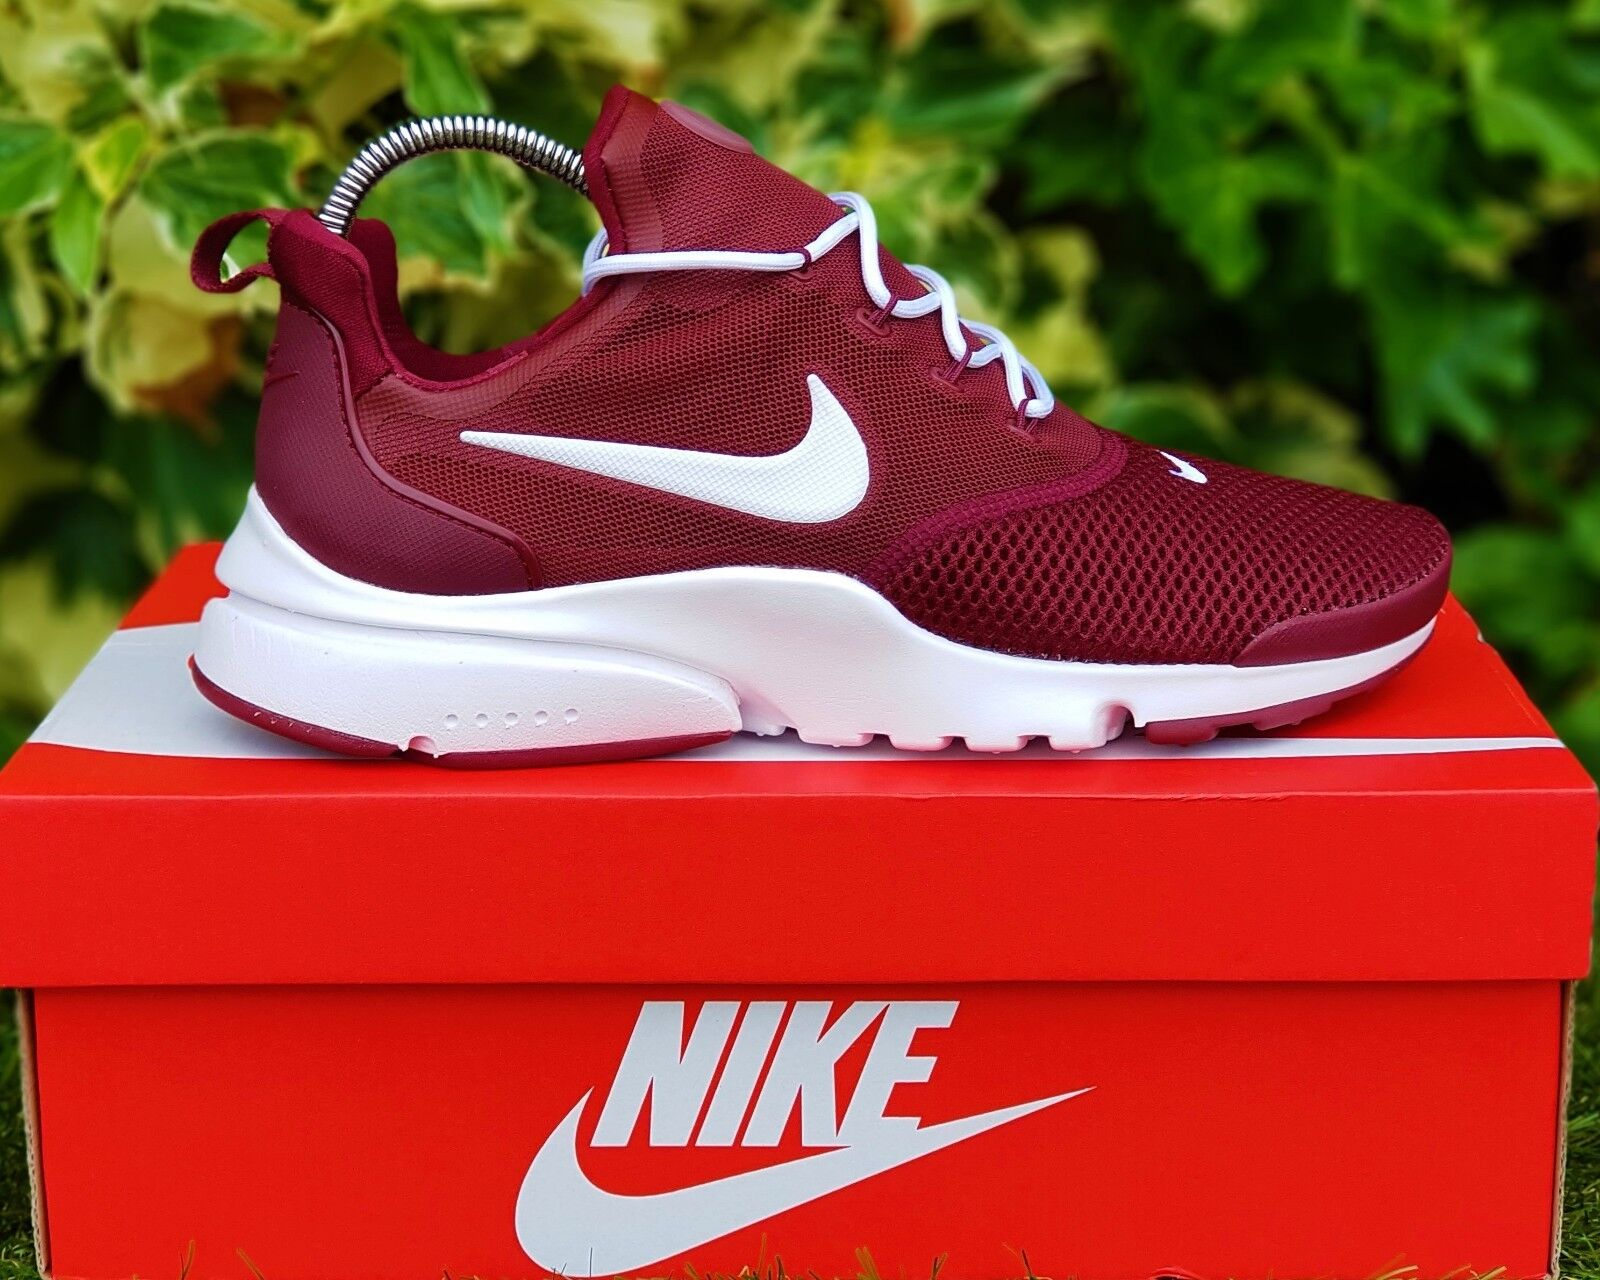 BNWB & Authentique NIKE AIR Presto Fly ® Dark équipe Rouge Baskets Taille UK 7